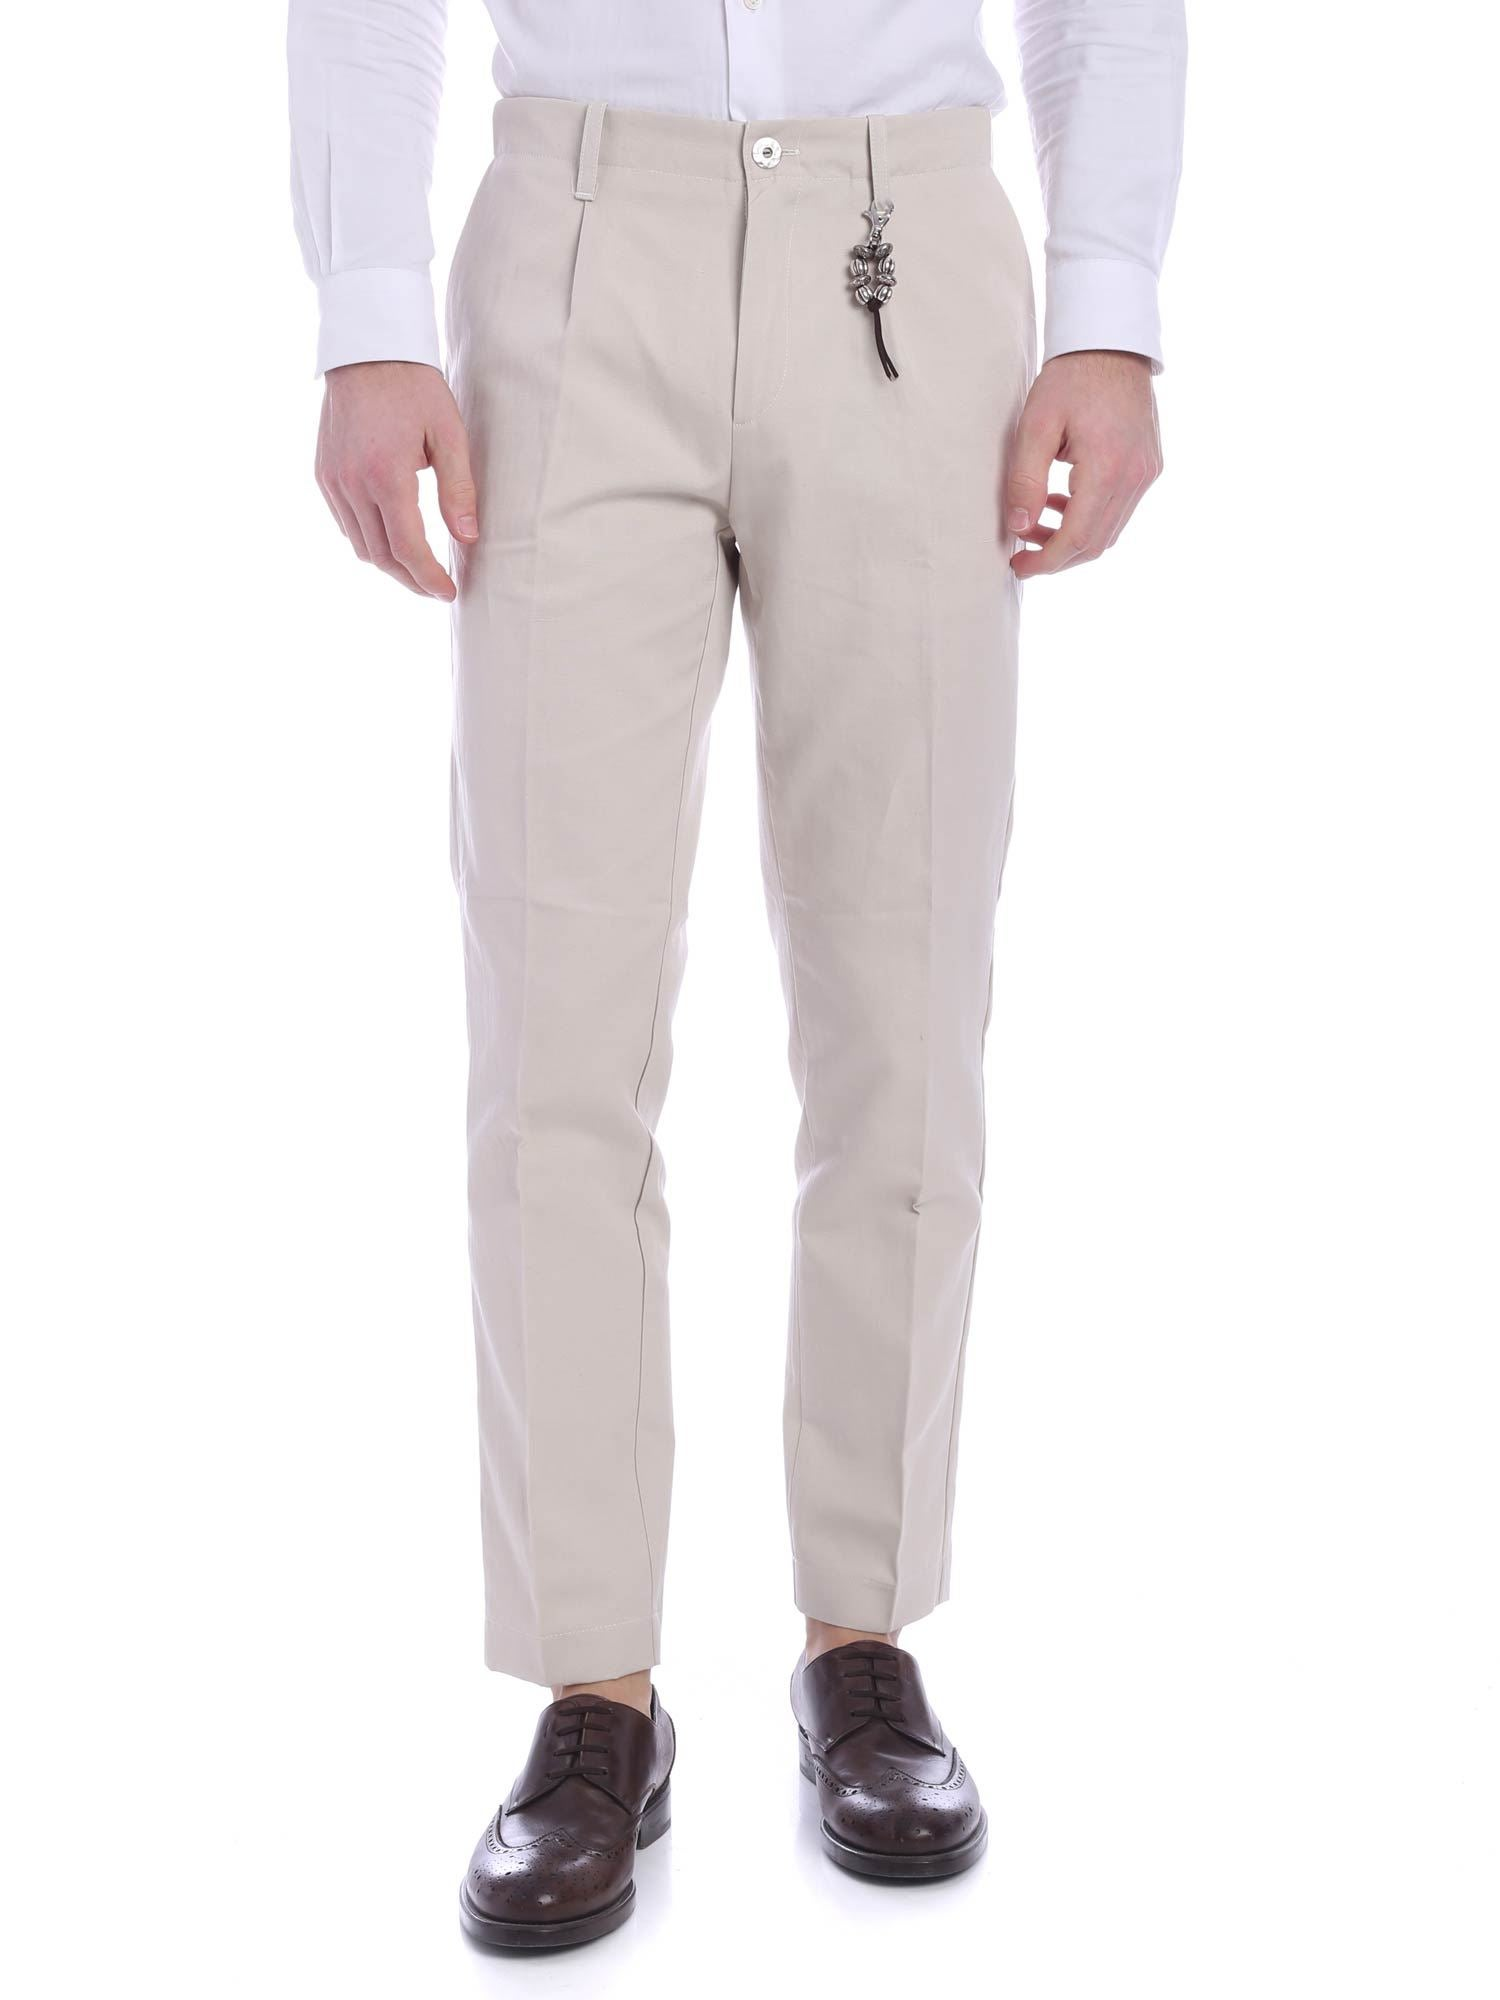 Image of Pantalone una pence lino beige R92 L-BE